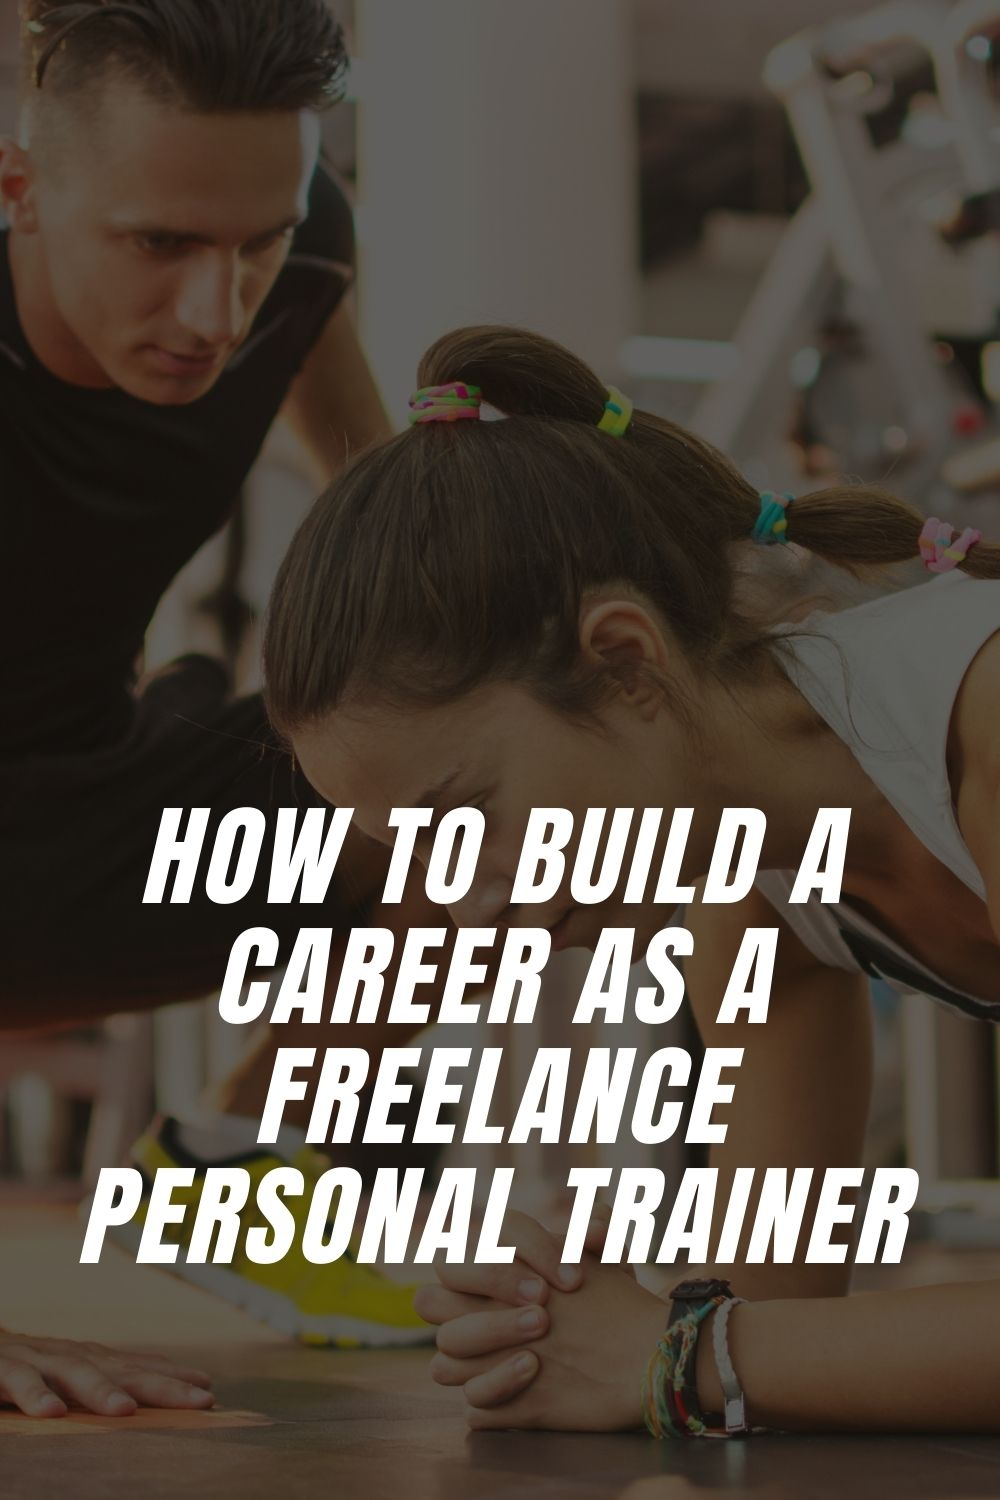 How to Build a Career as a Freelance Personal Trainer